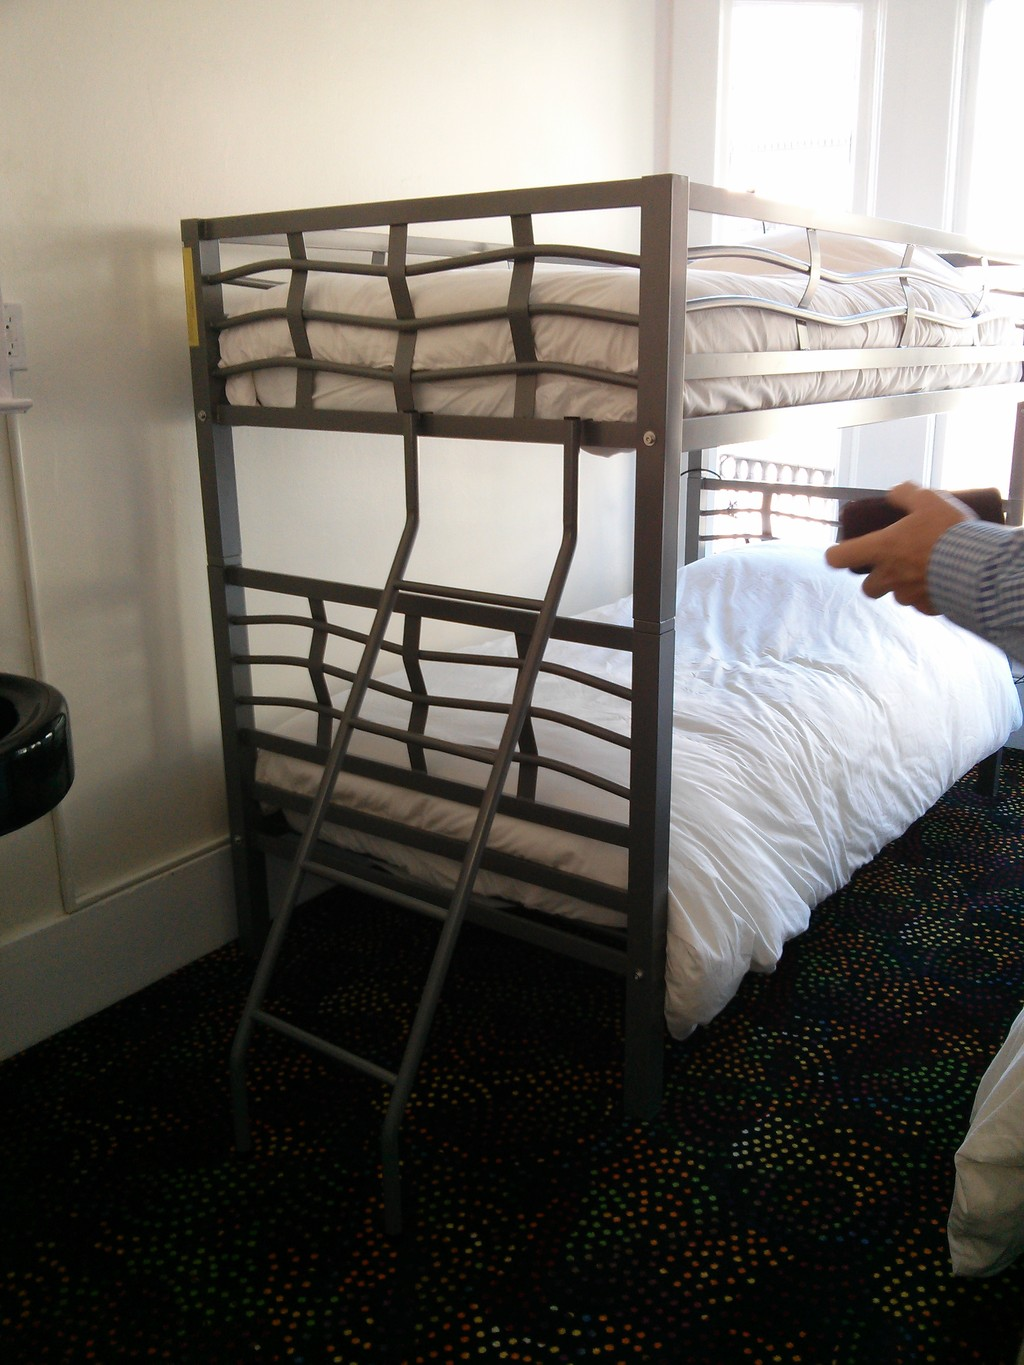 make up chairs best mesh office chair beds in double or triple rooms great student residence the heart of san francisco ...